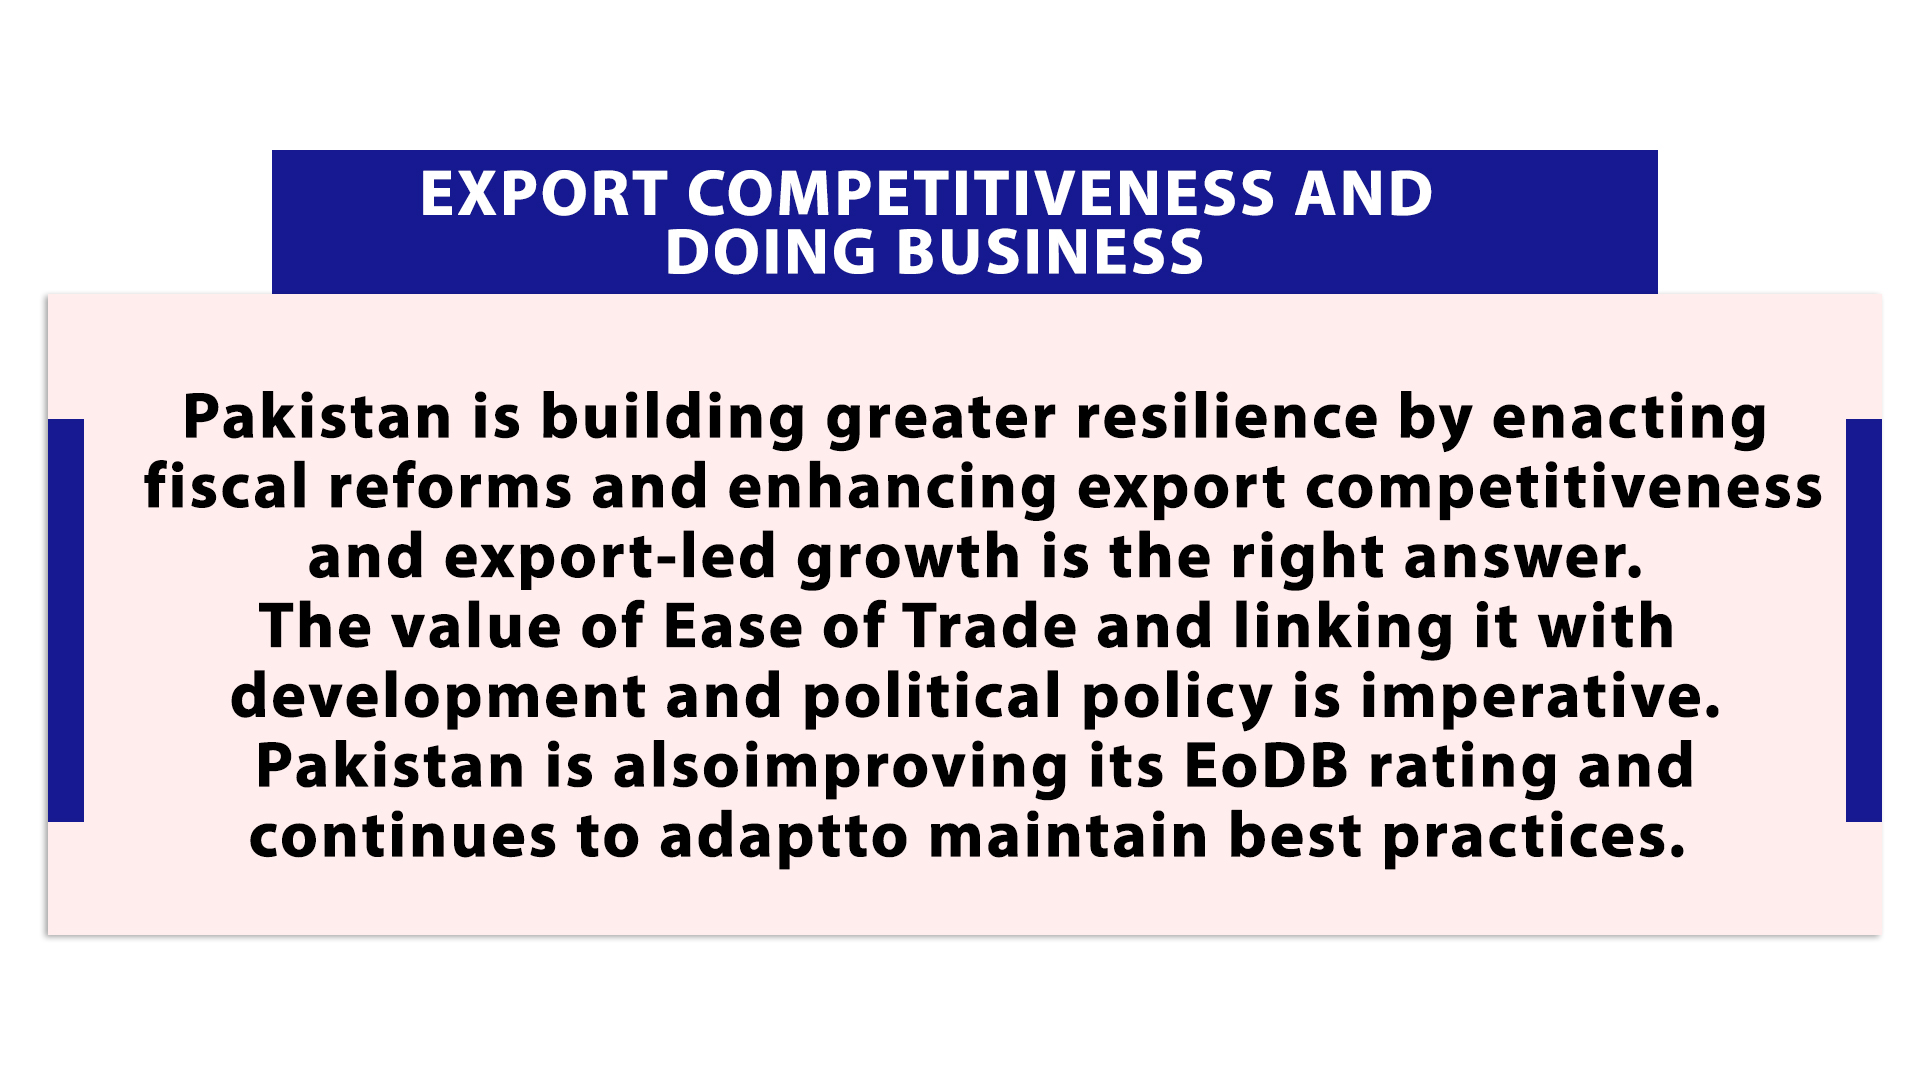 Export Competitiveness and Doing Business